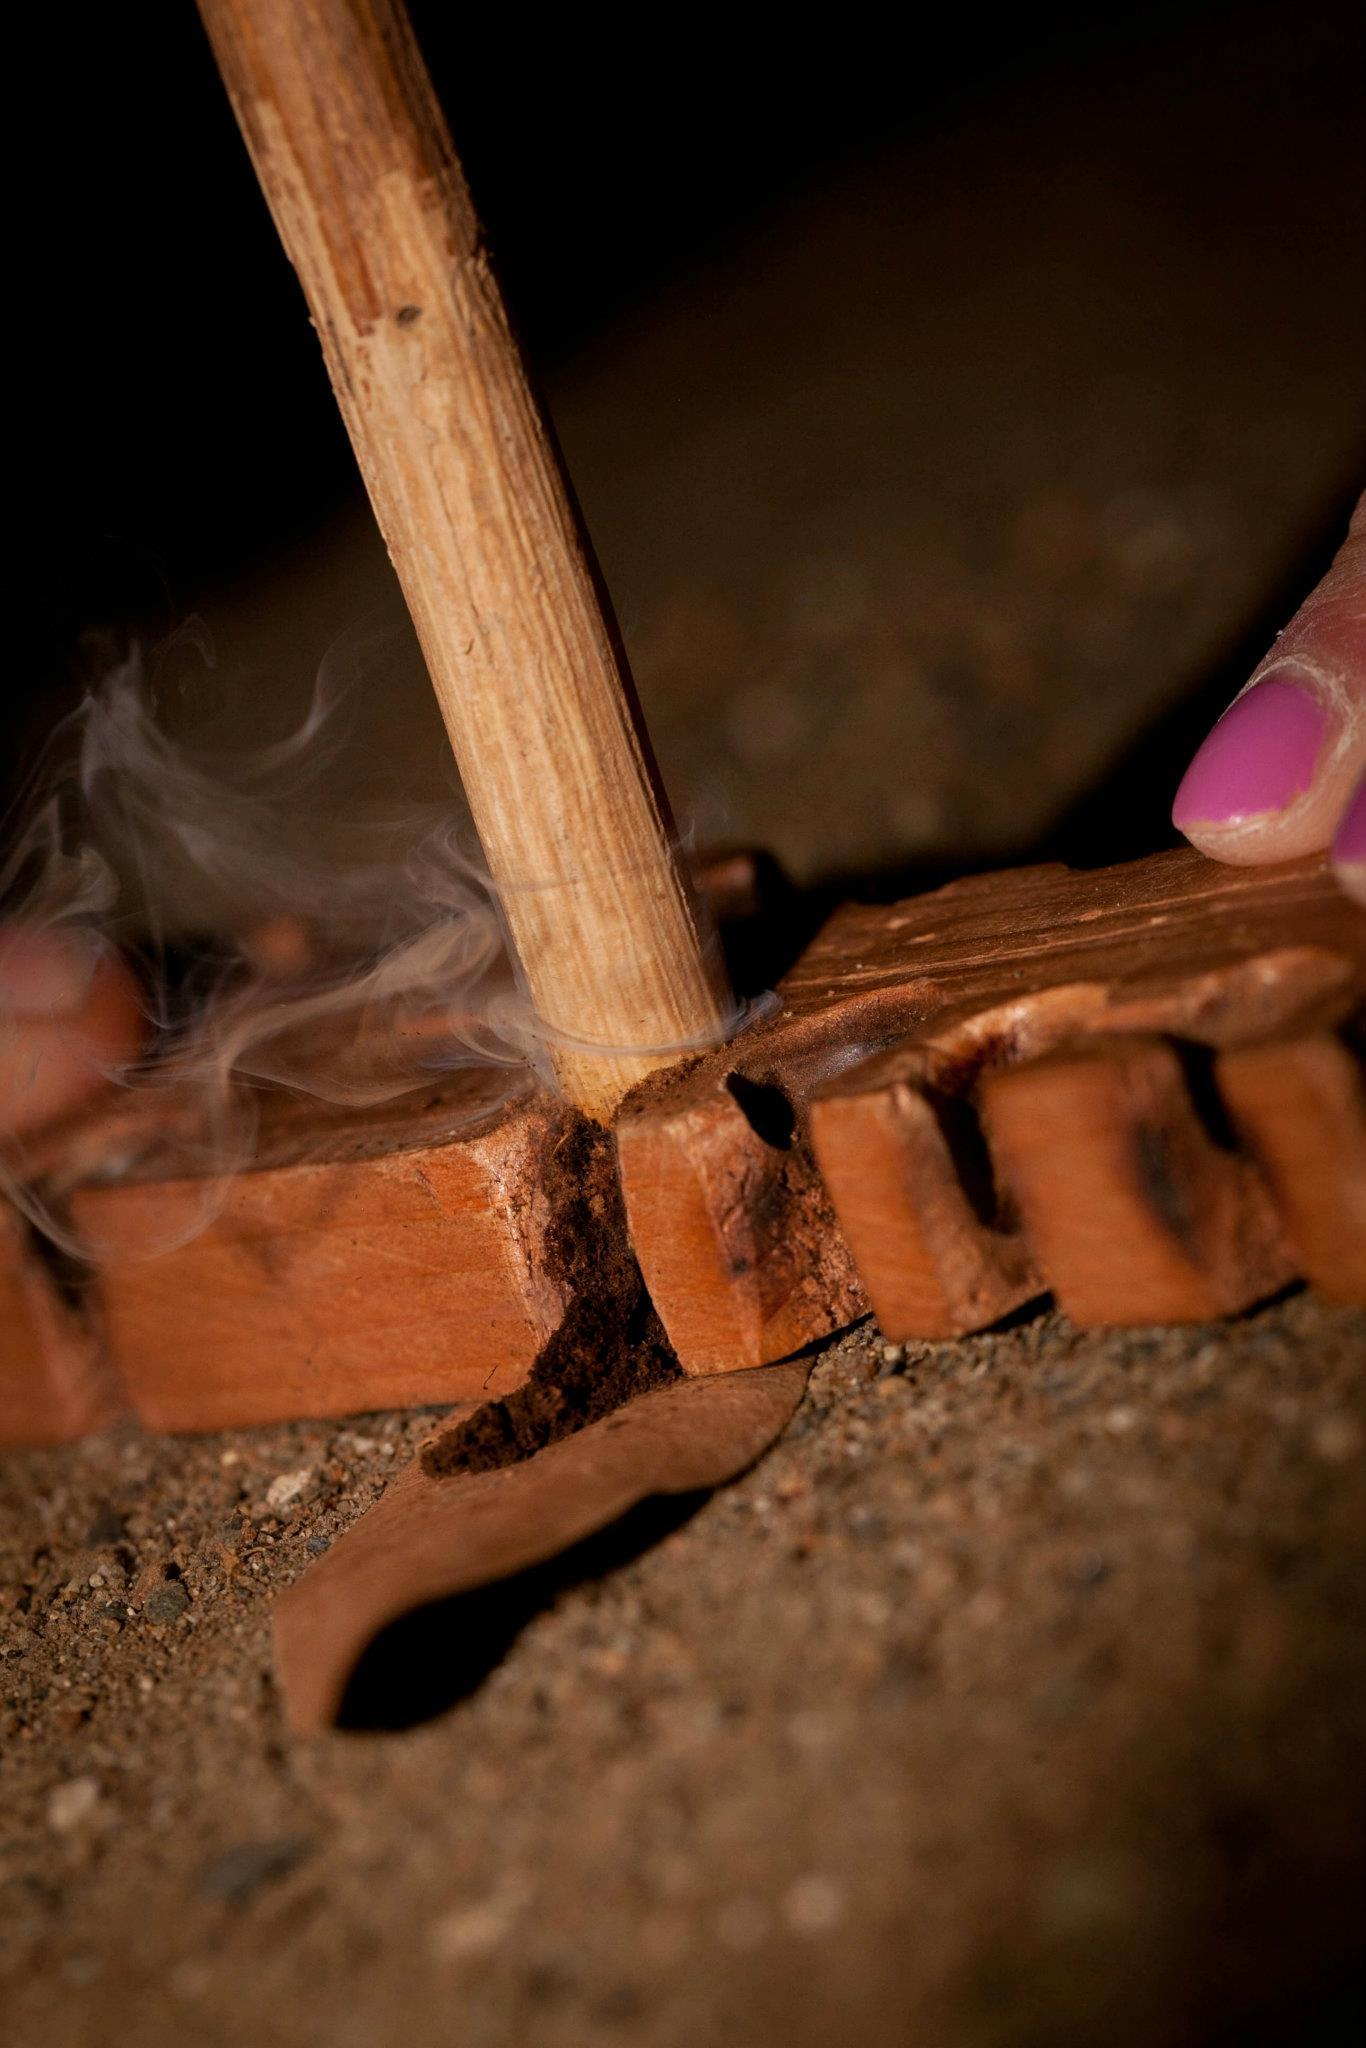 handdrill-smoking-closeup.jpg